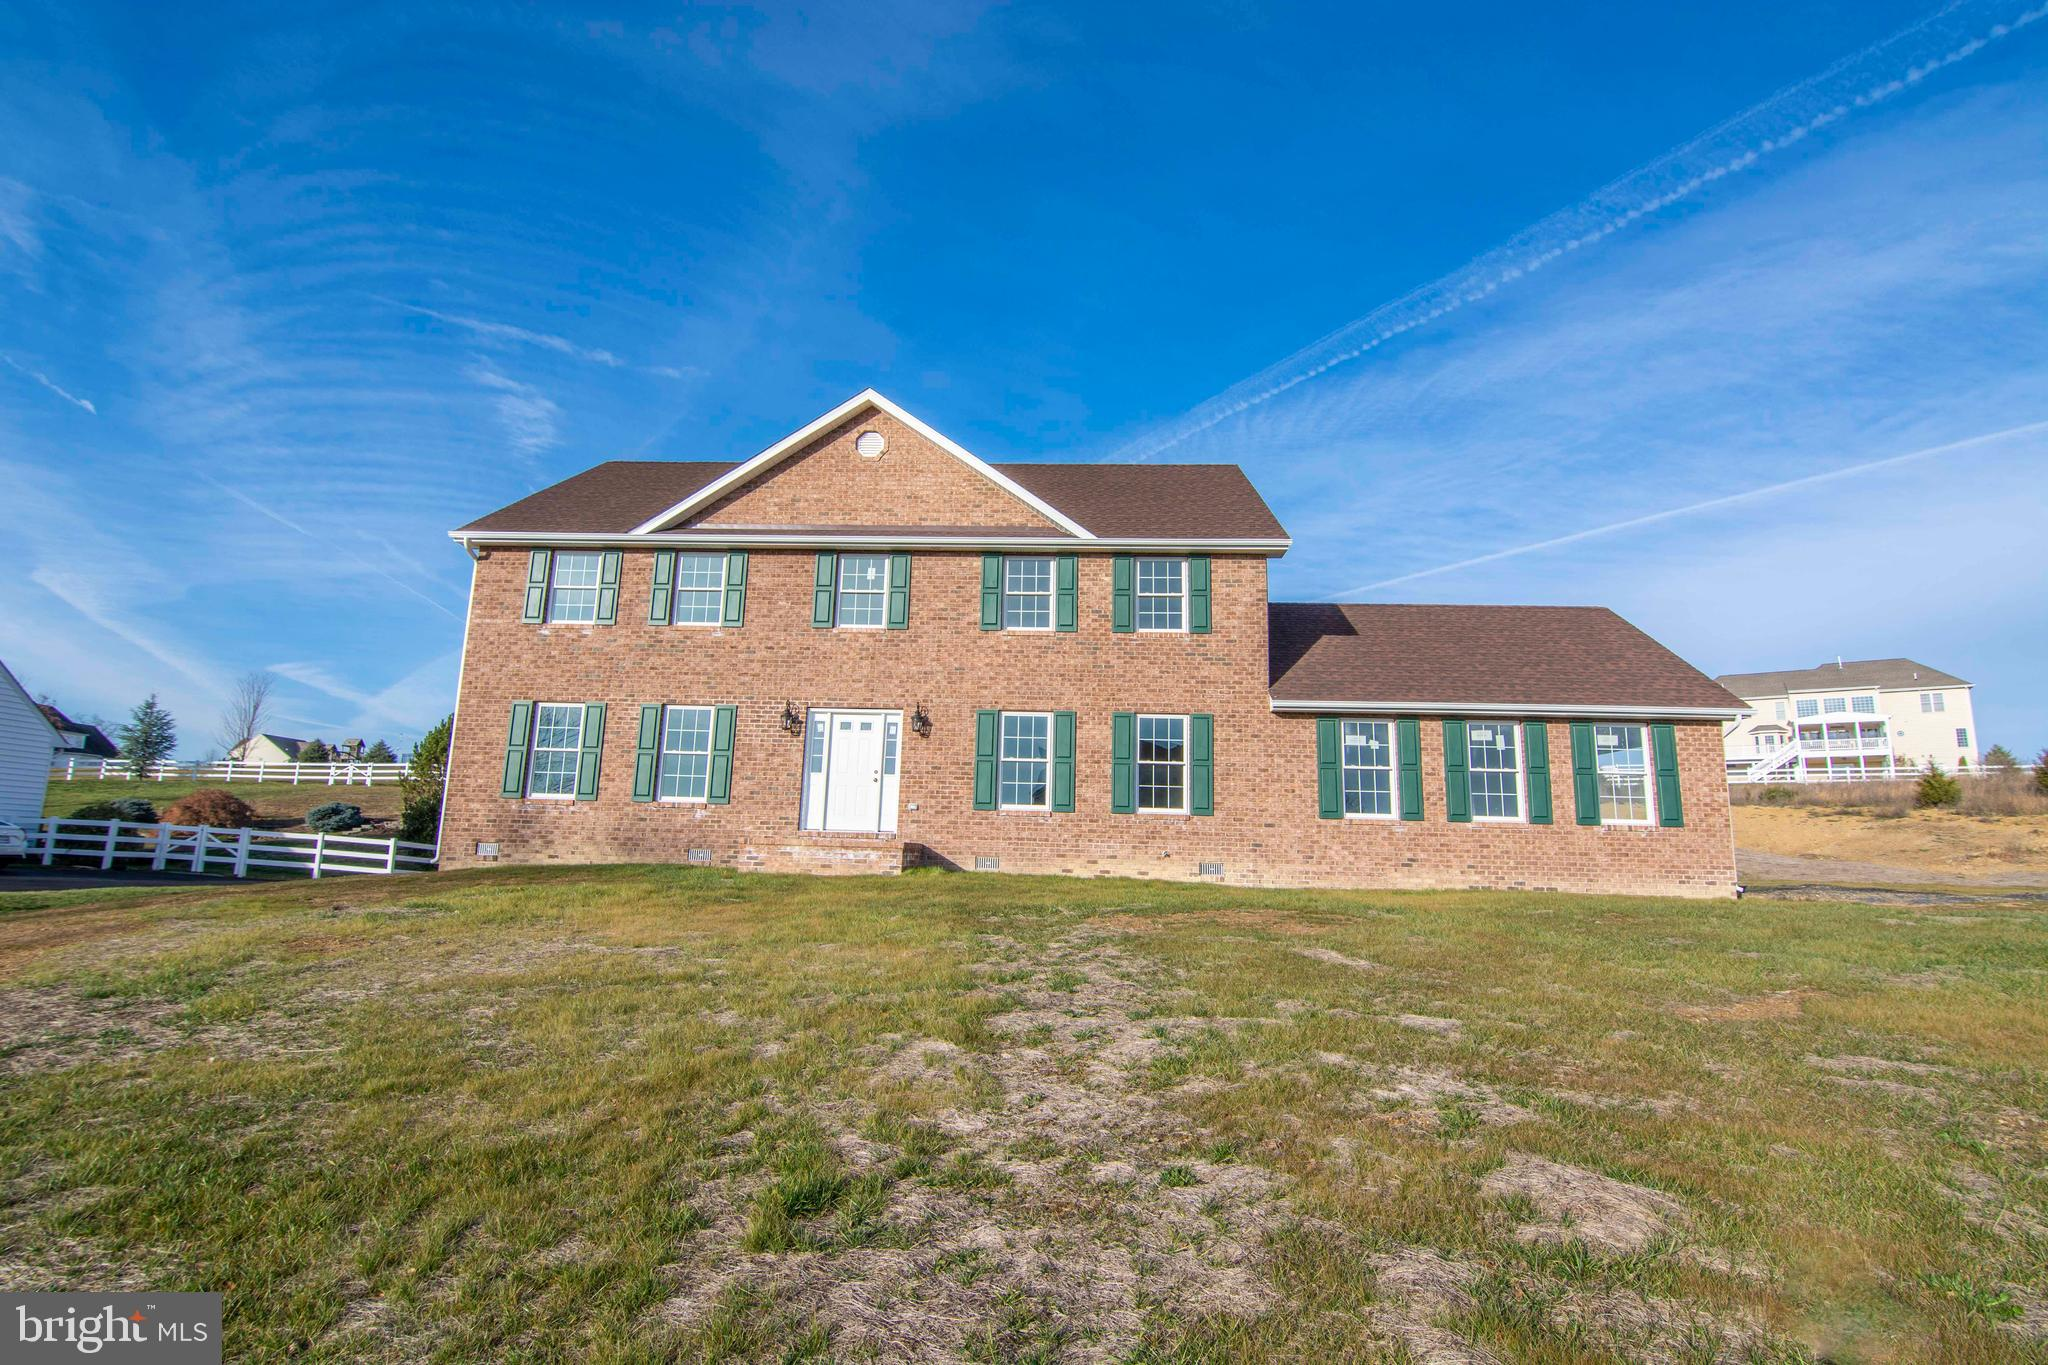 1187 COOLEY, MIDDLETOWN, VA 22645